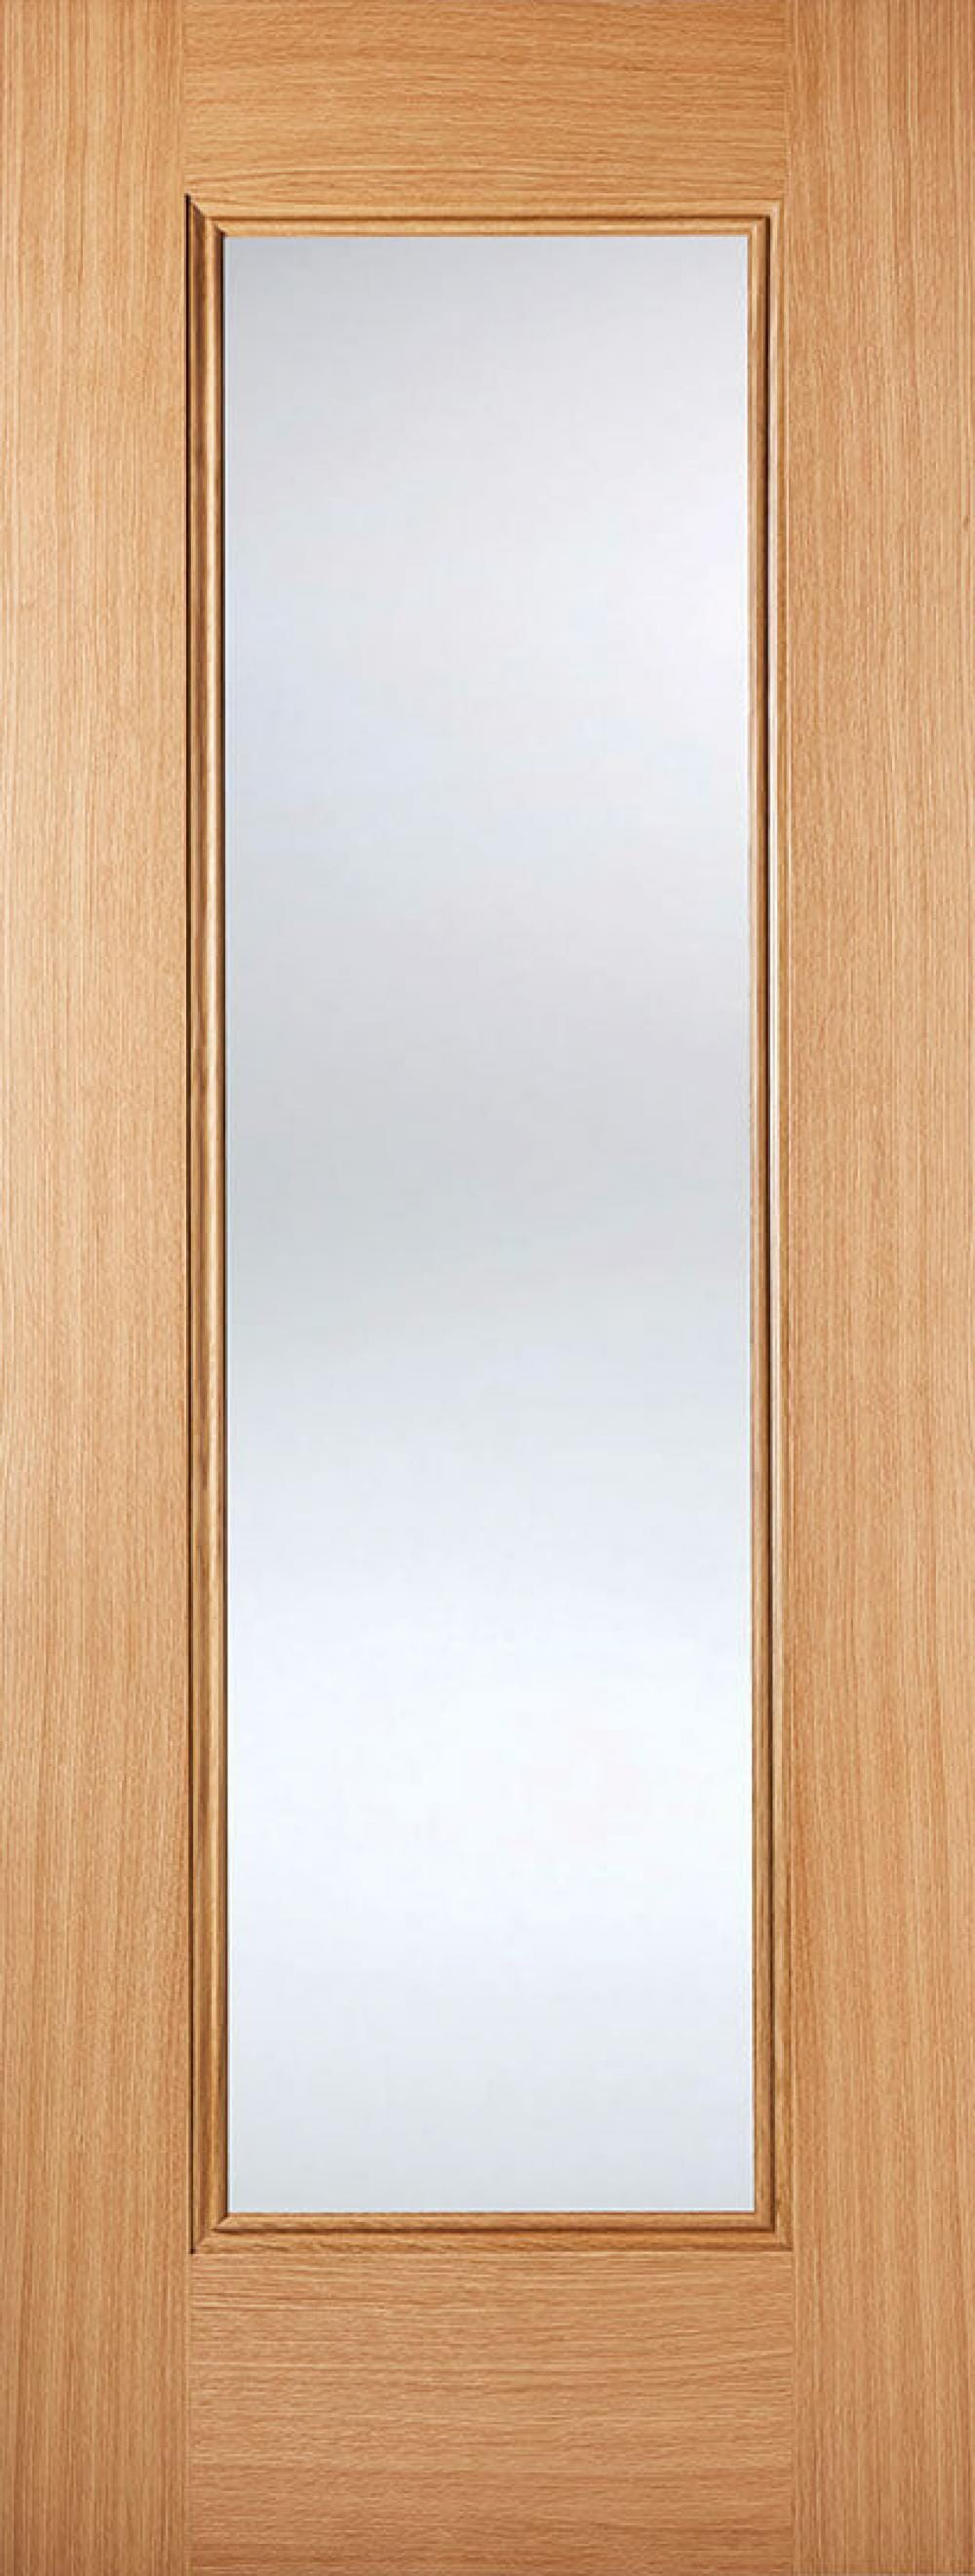 Eindhoven Oak 1l - Clear Glass Prefinished Image